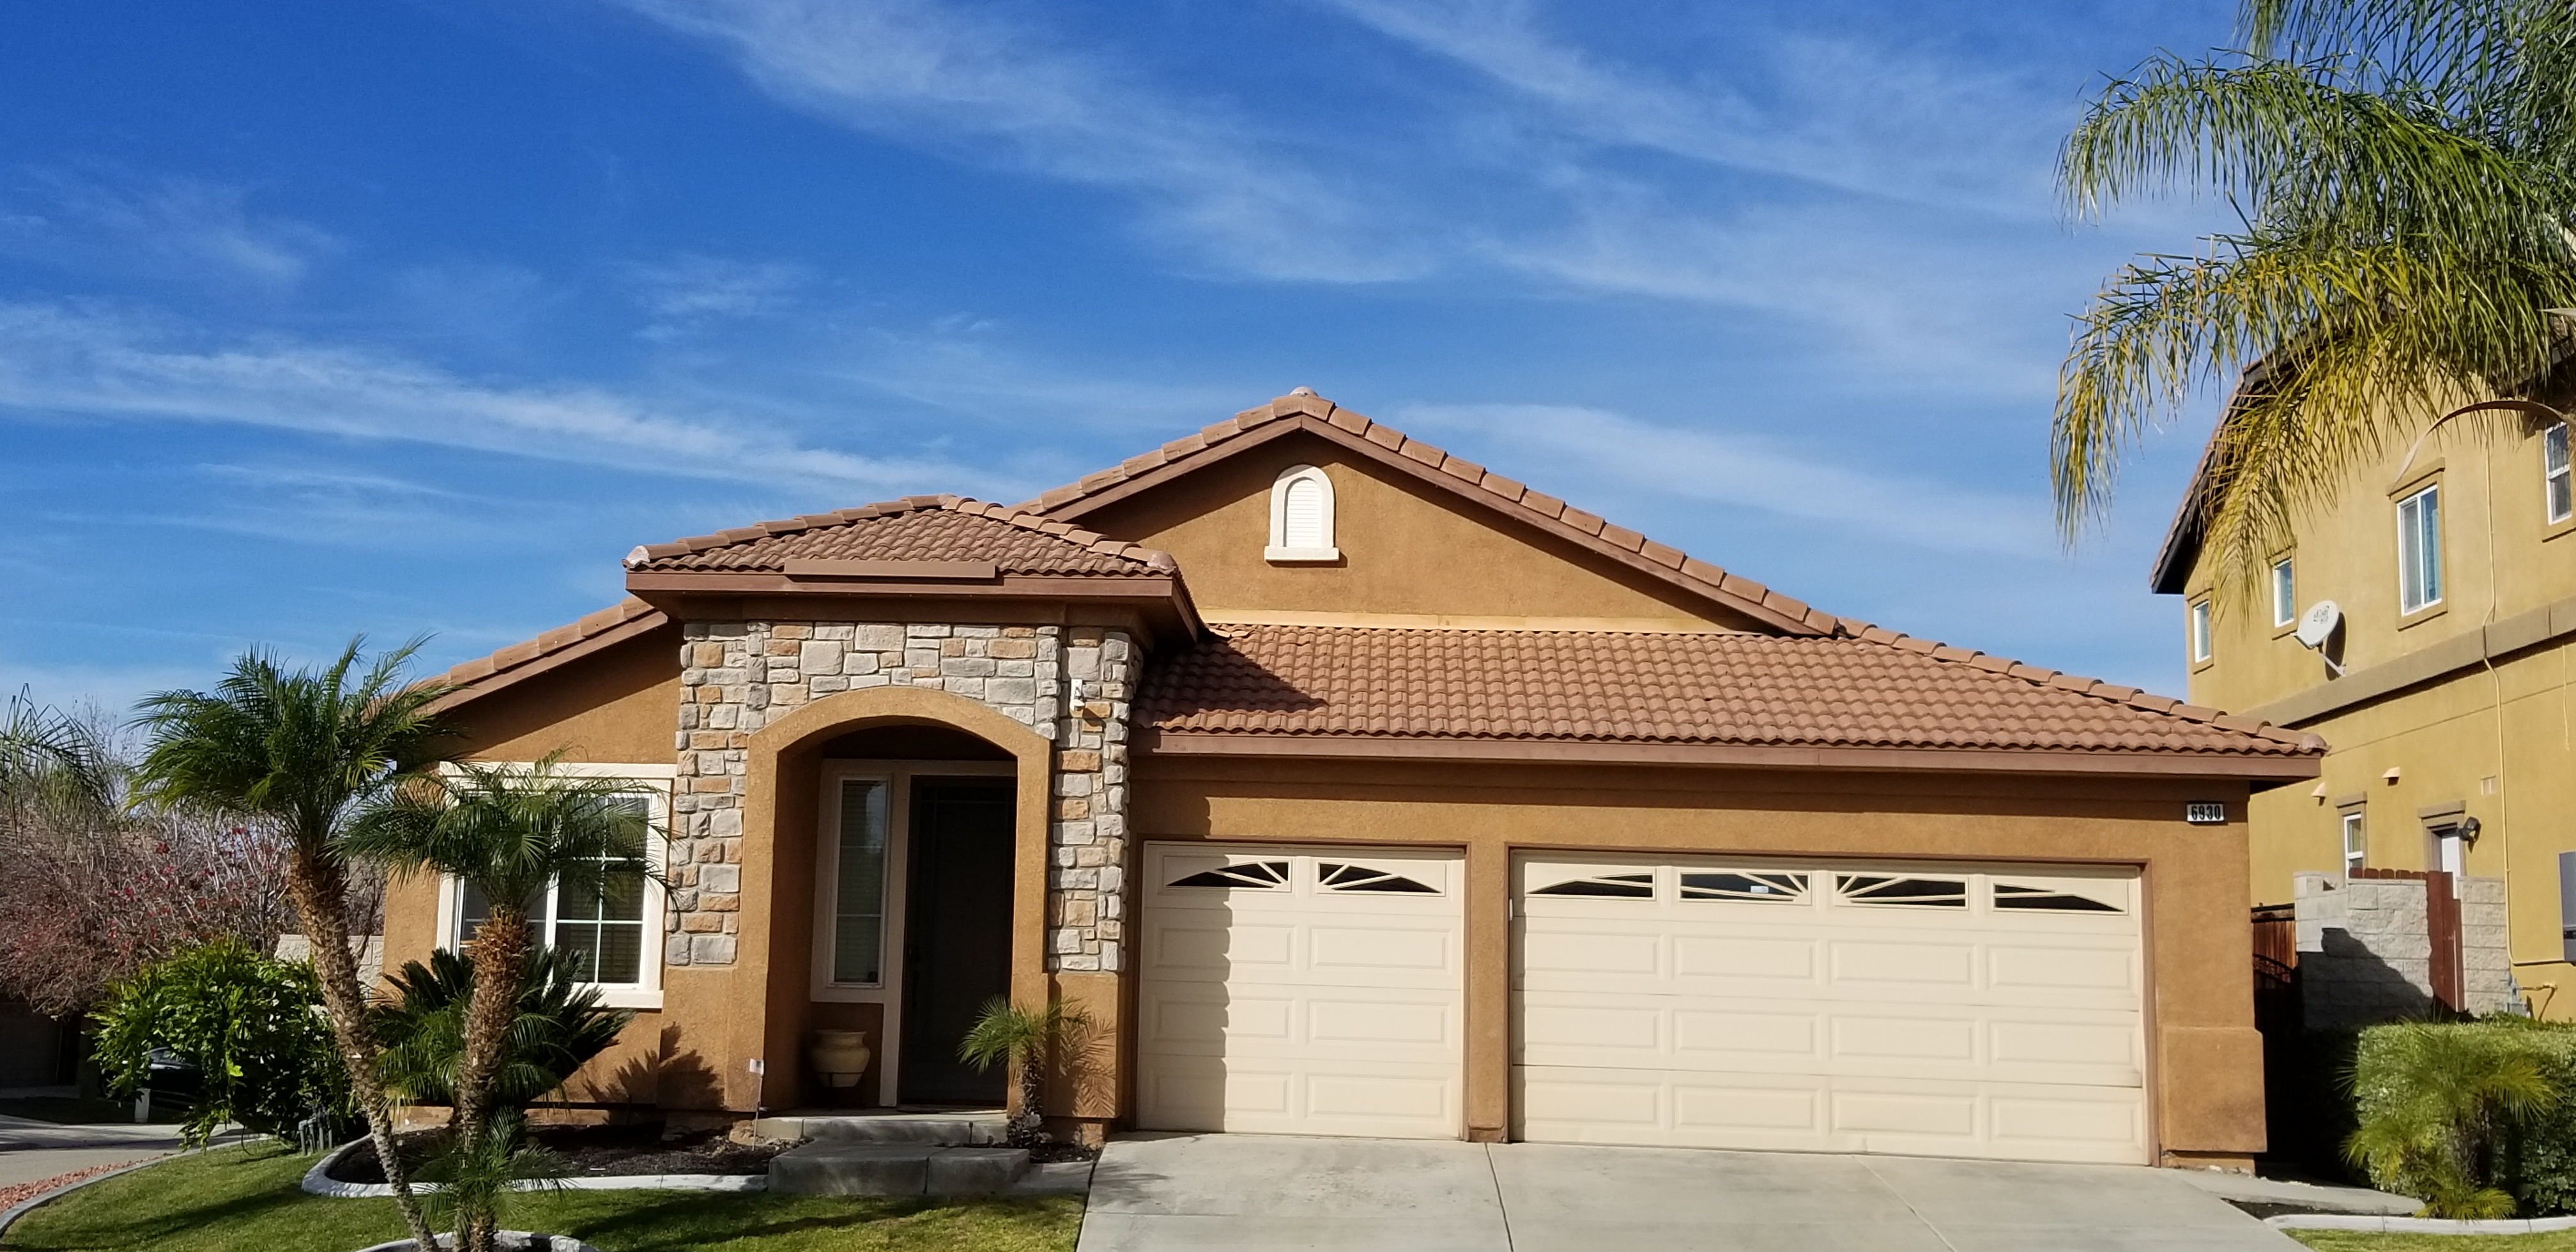 6930 Clear Spring Ct, Highland, Ca 92346